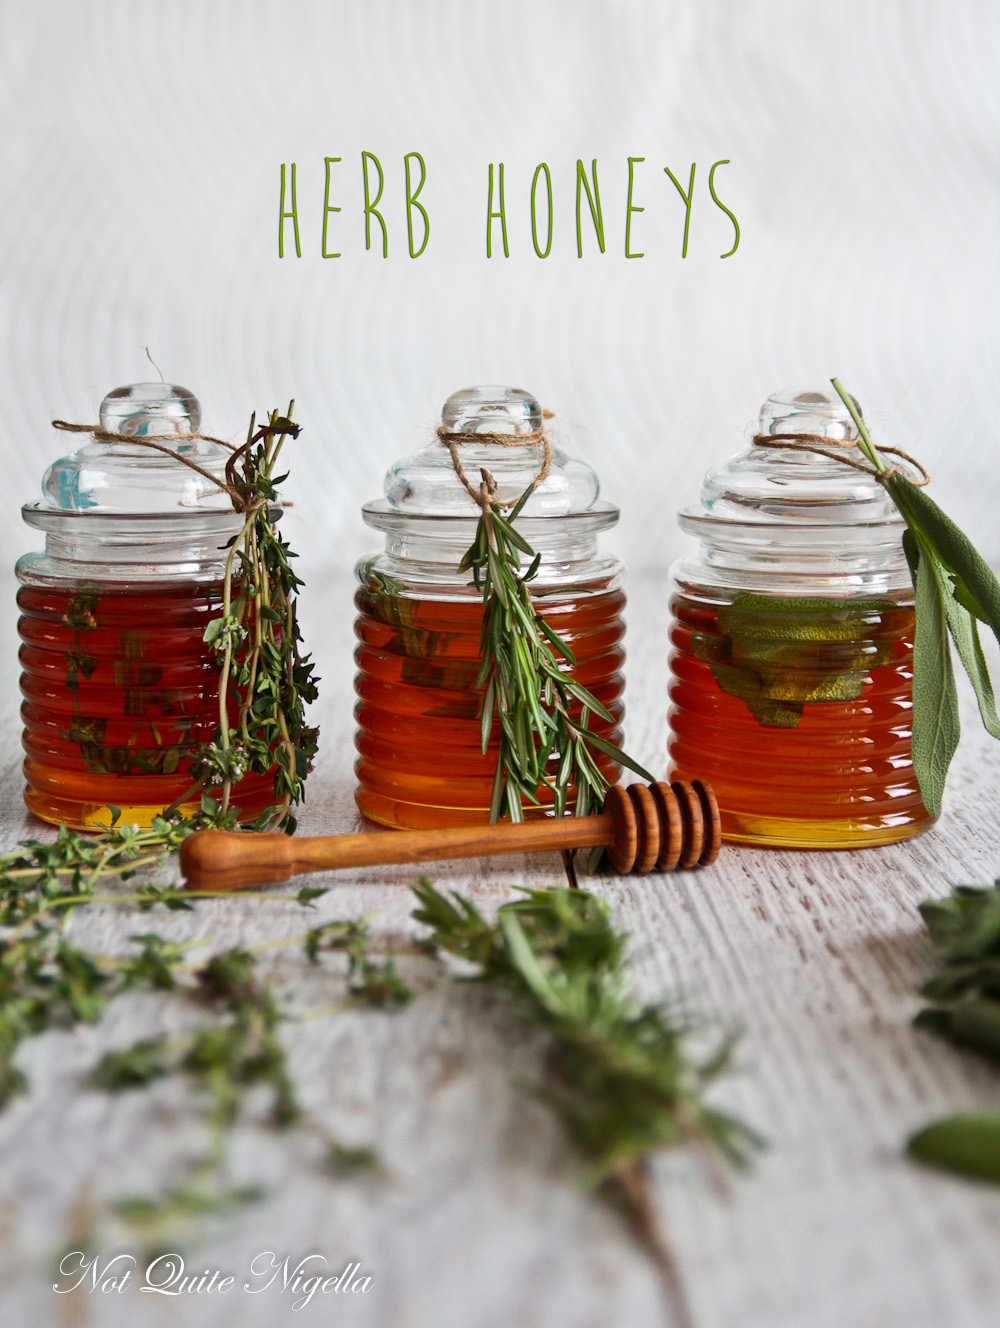 Herb Honey